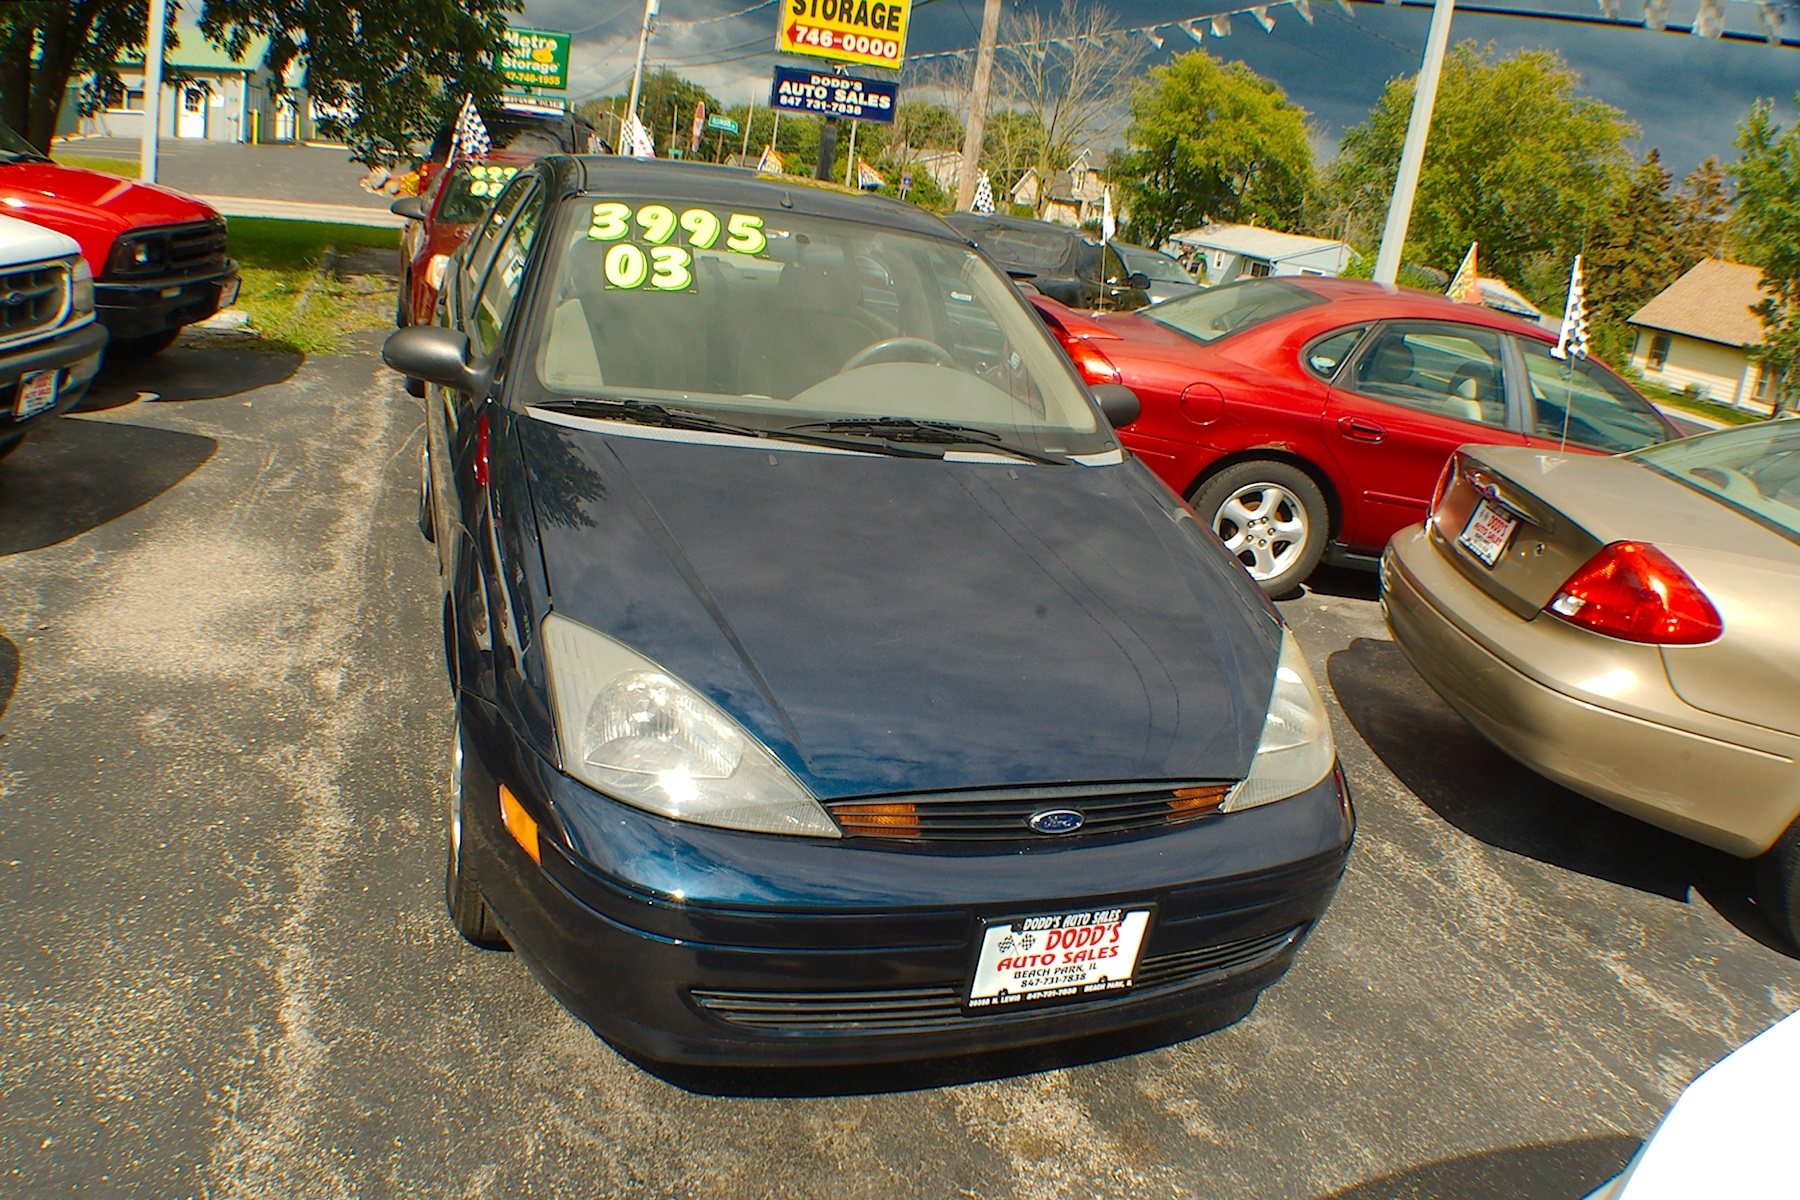 2003 Ford Focus SE Blue Sedan Used Car Sale Gurnee Kenosha Mchenry Chicago Illinois